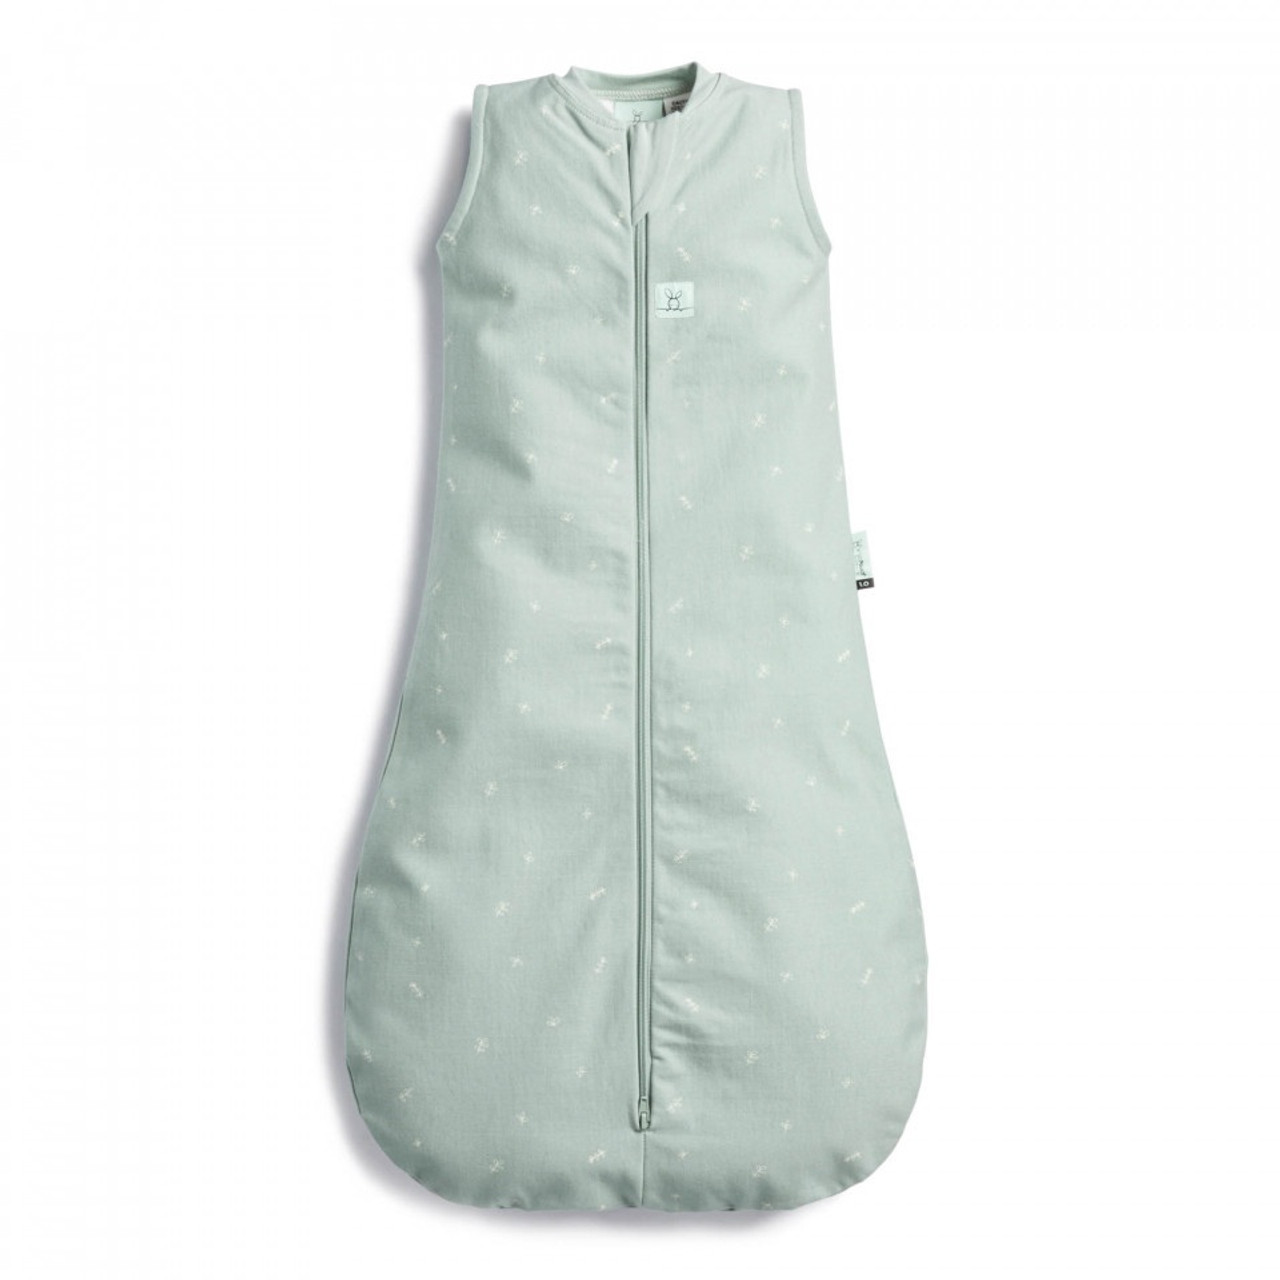 ergoPouch Jersey Sleeping Bag 1.0Tog 3-12 Months SAGE at Baby Barn Discounts Ergopouch Jersey Sleeping Bag is the ideal first sleeping bag for baby.